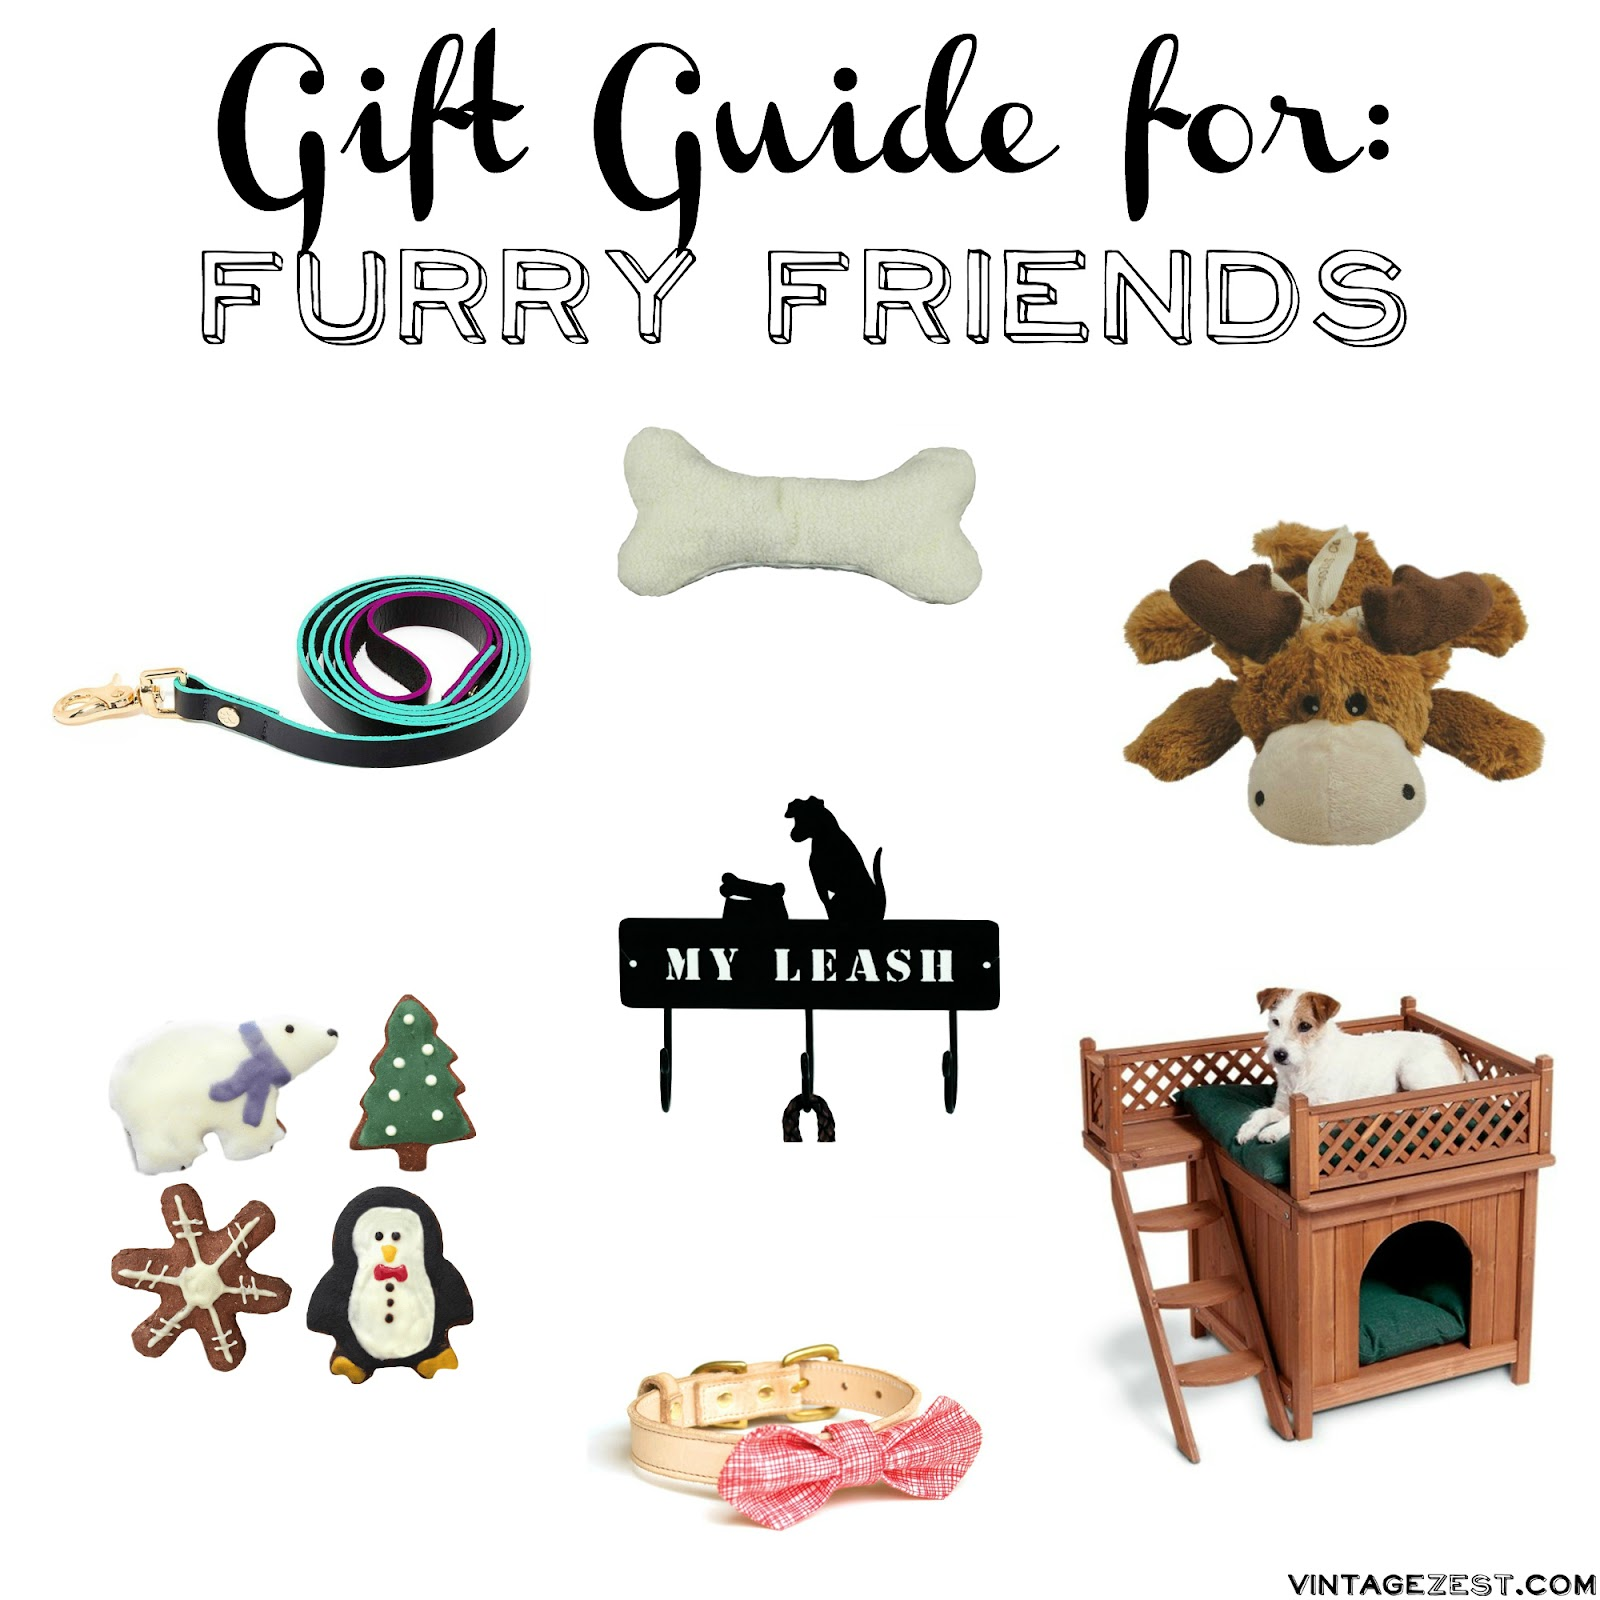 Gift Guide for Dogs on Diane's Vintage Zest  #giftguide #pets #dogs